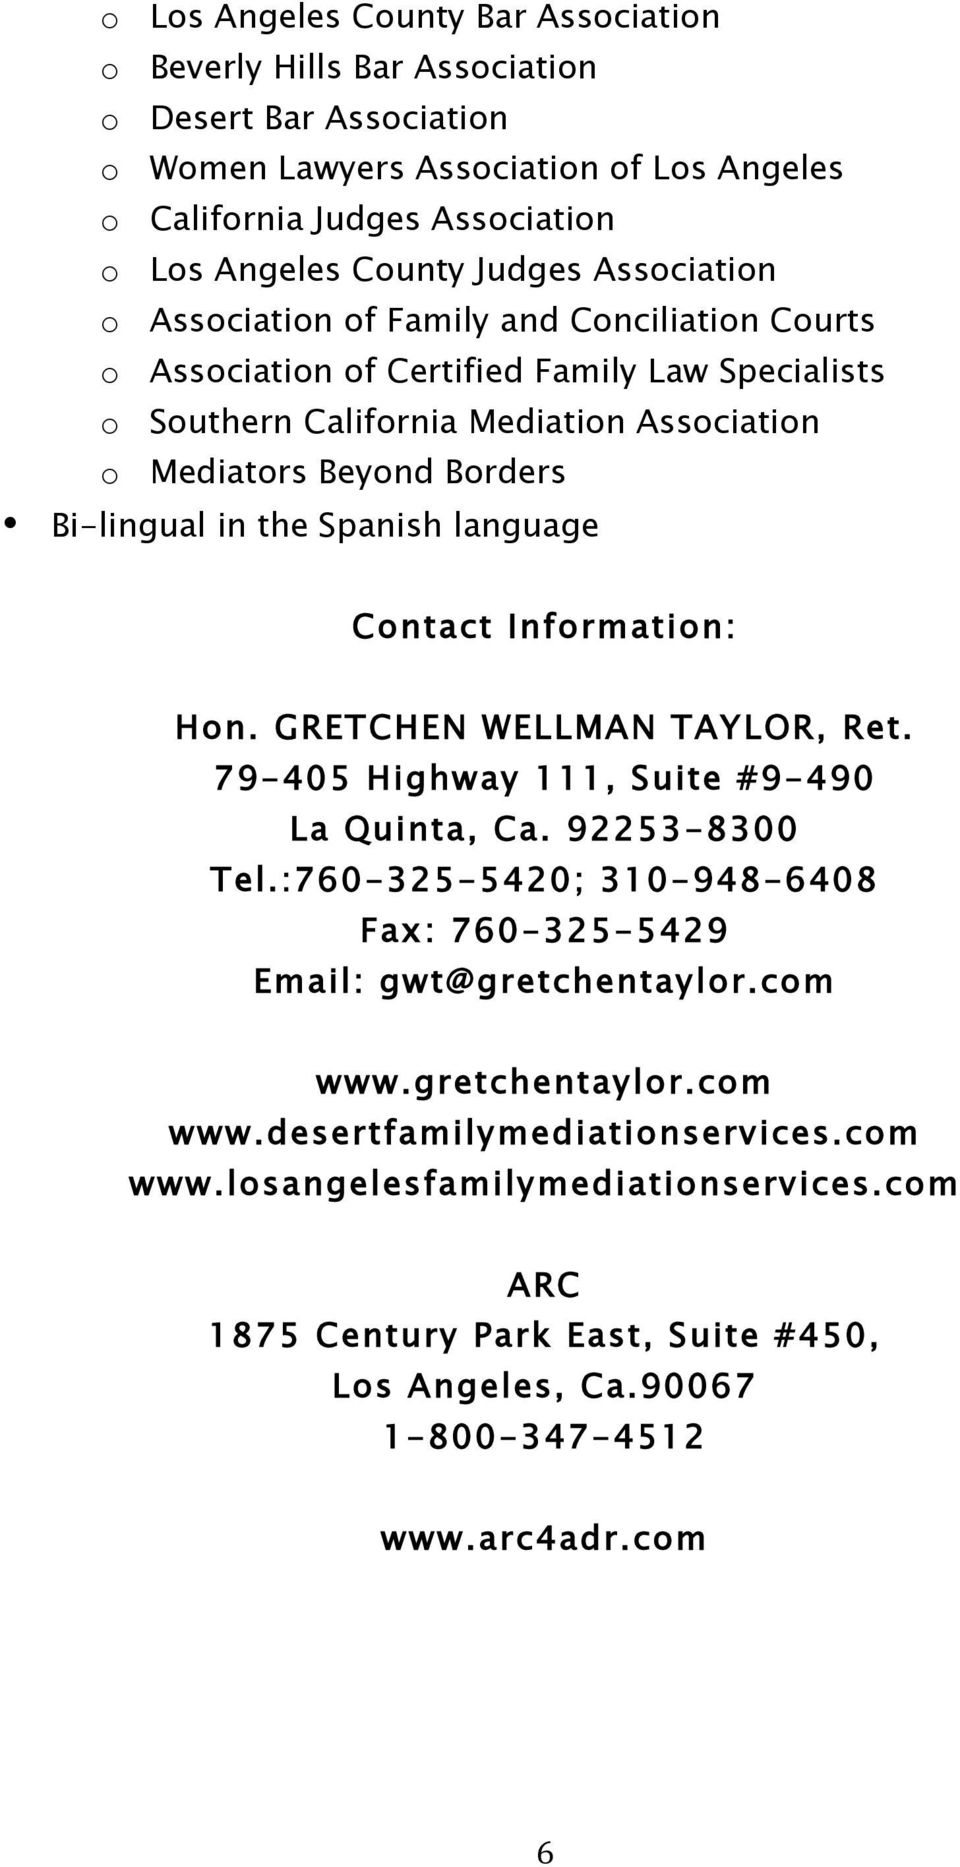 Spanish language Contact Information: Hon. GRETCHEN WELLMAN TAYLOR, Ret. 79-405 Highway 111, Suite #9-490 La Quinta, Ca. 92253-8300 Tel.